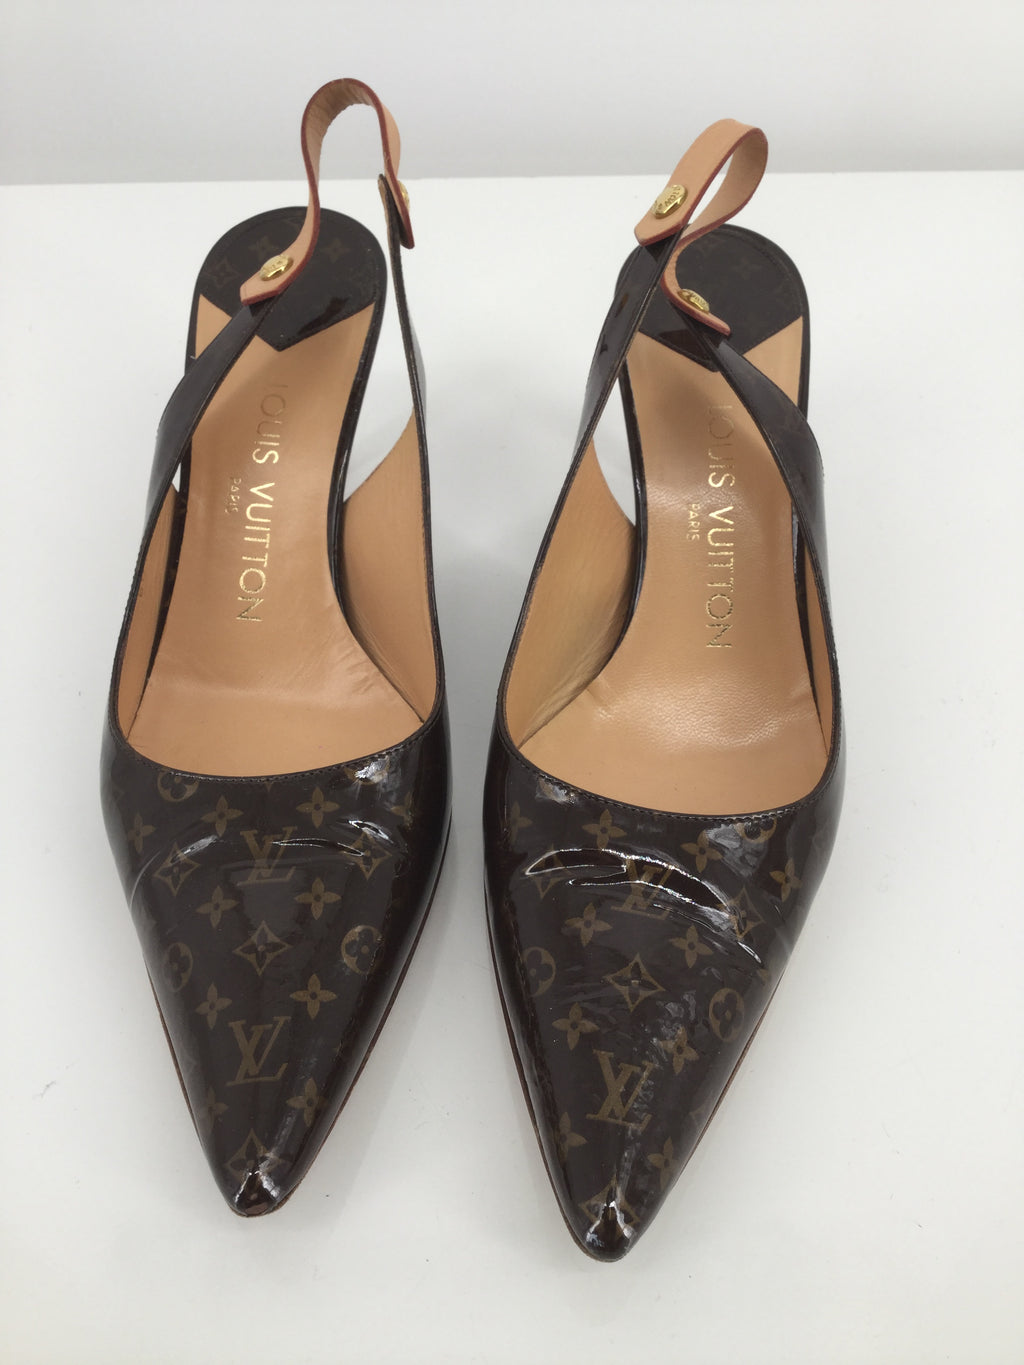 Louis Vuitton Monogram Heels